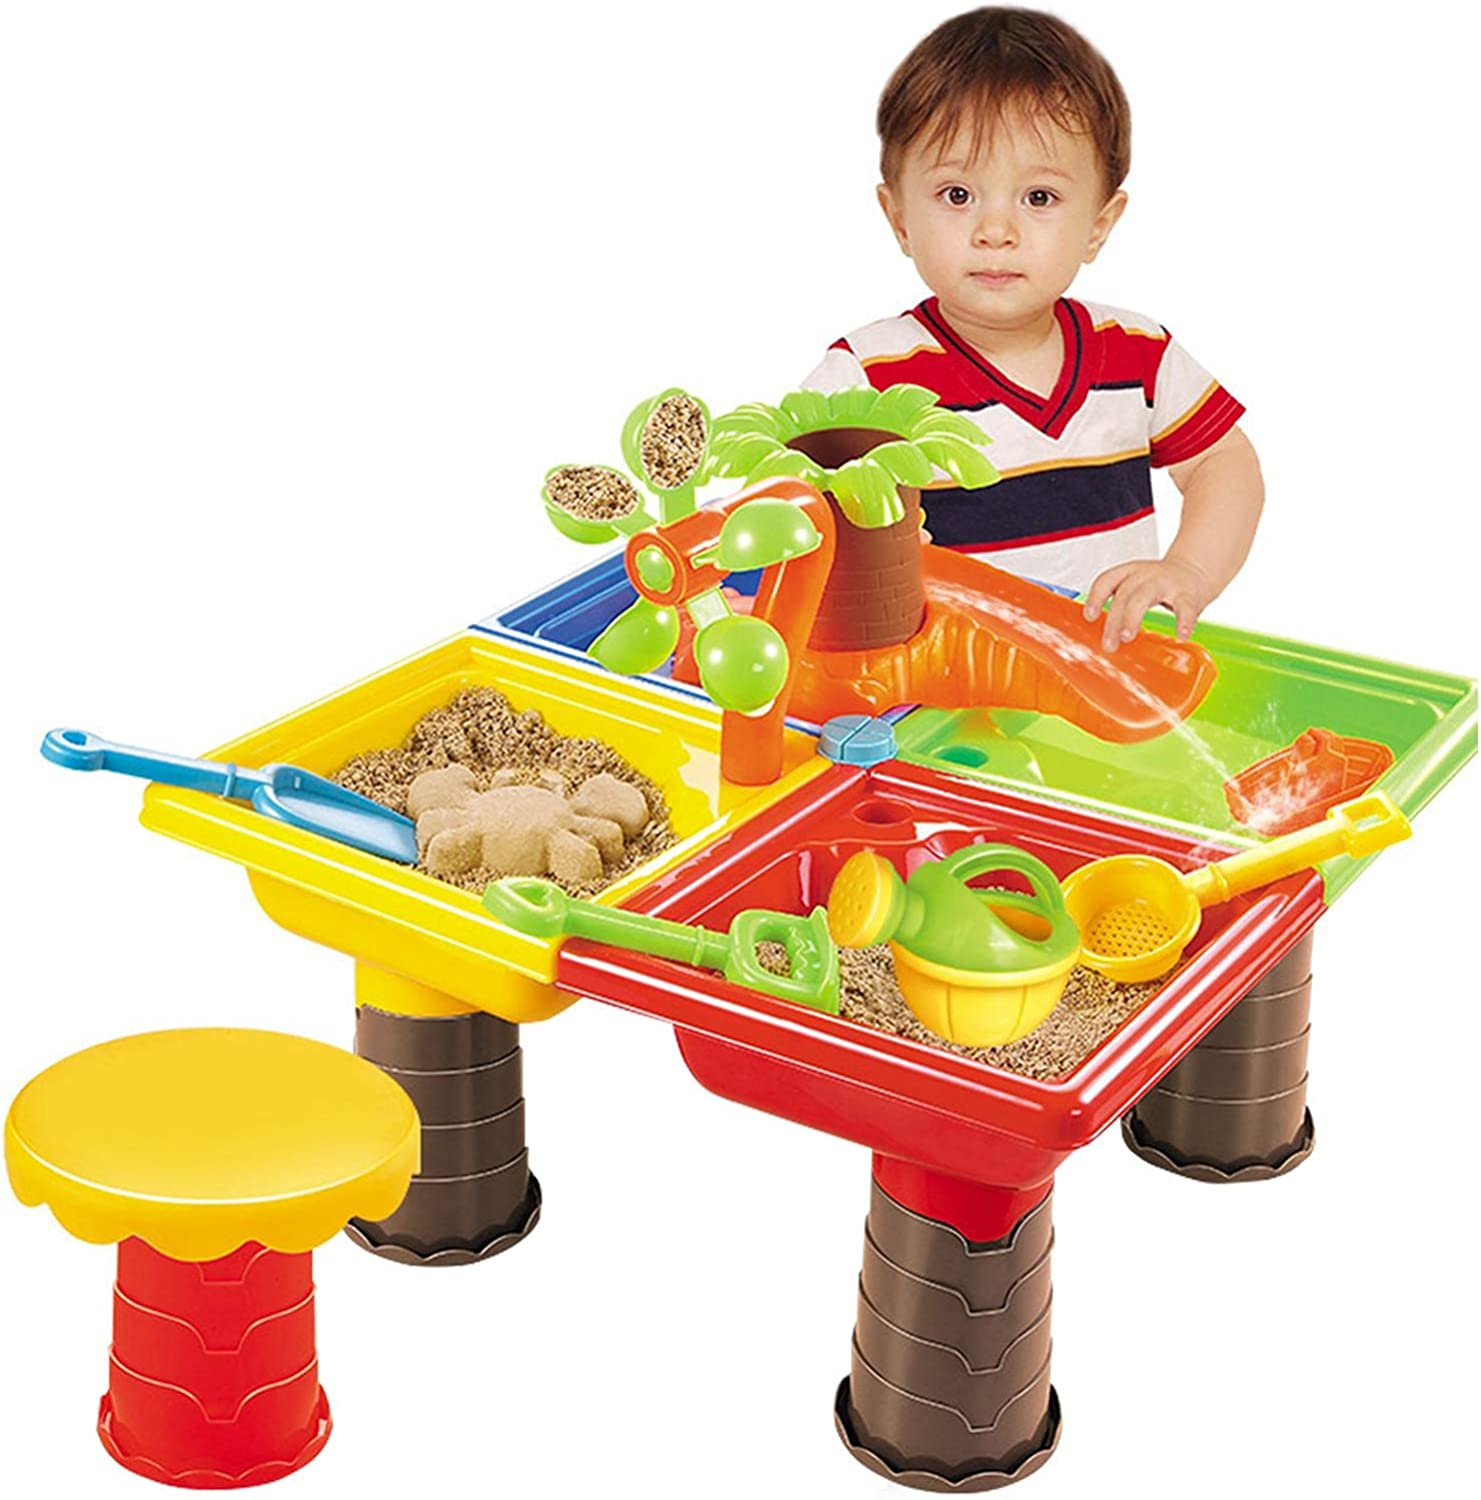 Nogan Baby Water Sand Max 86% OFF Dredging Tools Ou Popular shop is the lowest price challenge Color Table Random Beach